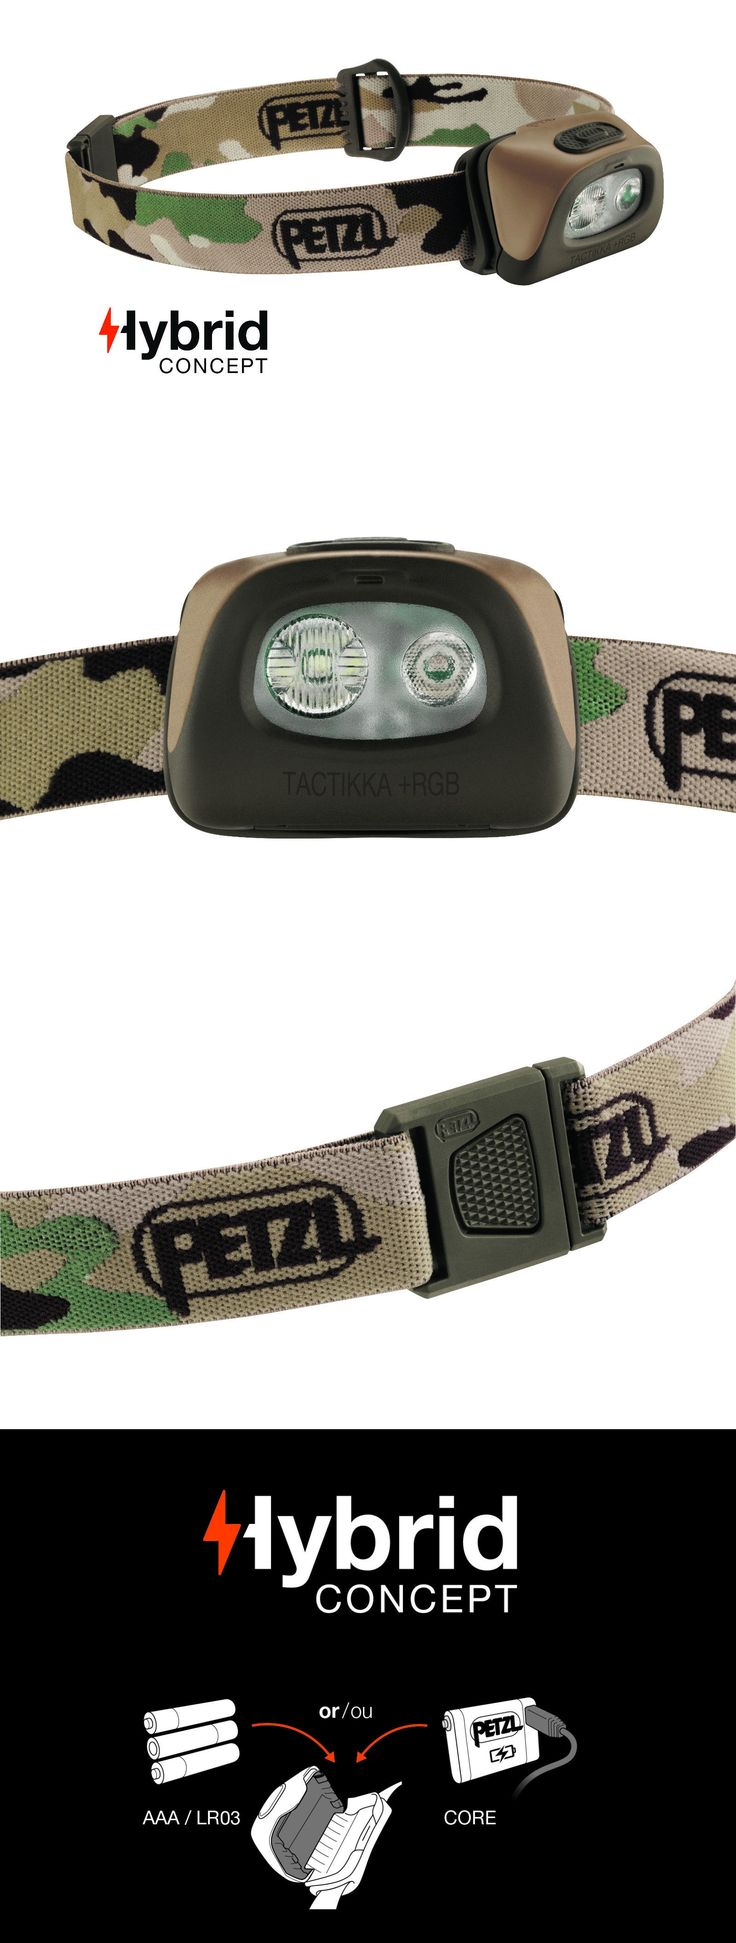 Headlamps 106984: Petzl Headlamp - Tactikka + Rgb (Red, Green, Blue) 250 Lumens, New 2017 Model -> BUY IT NOW ONLY: $54.95 on eBay!